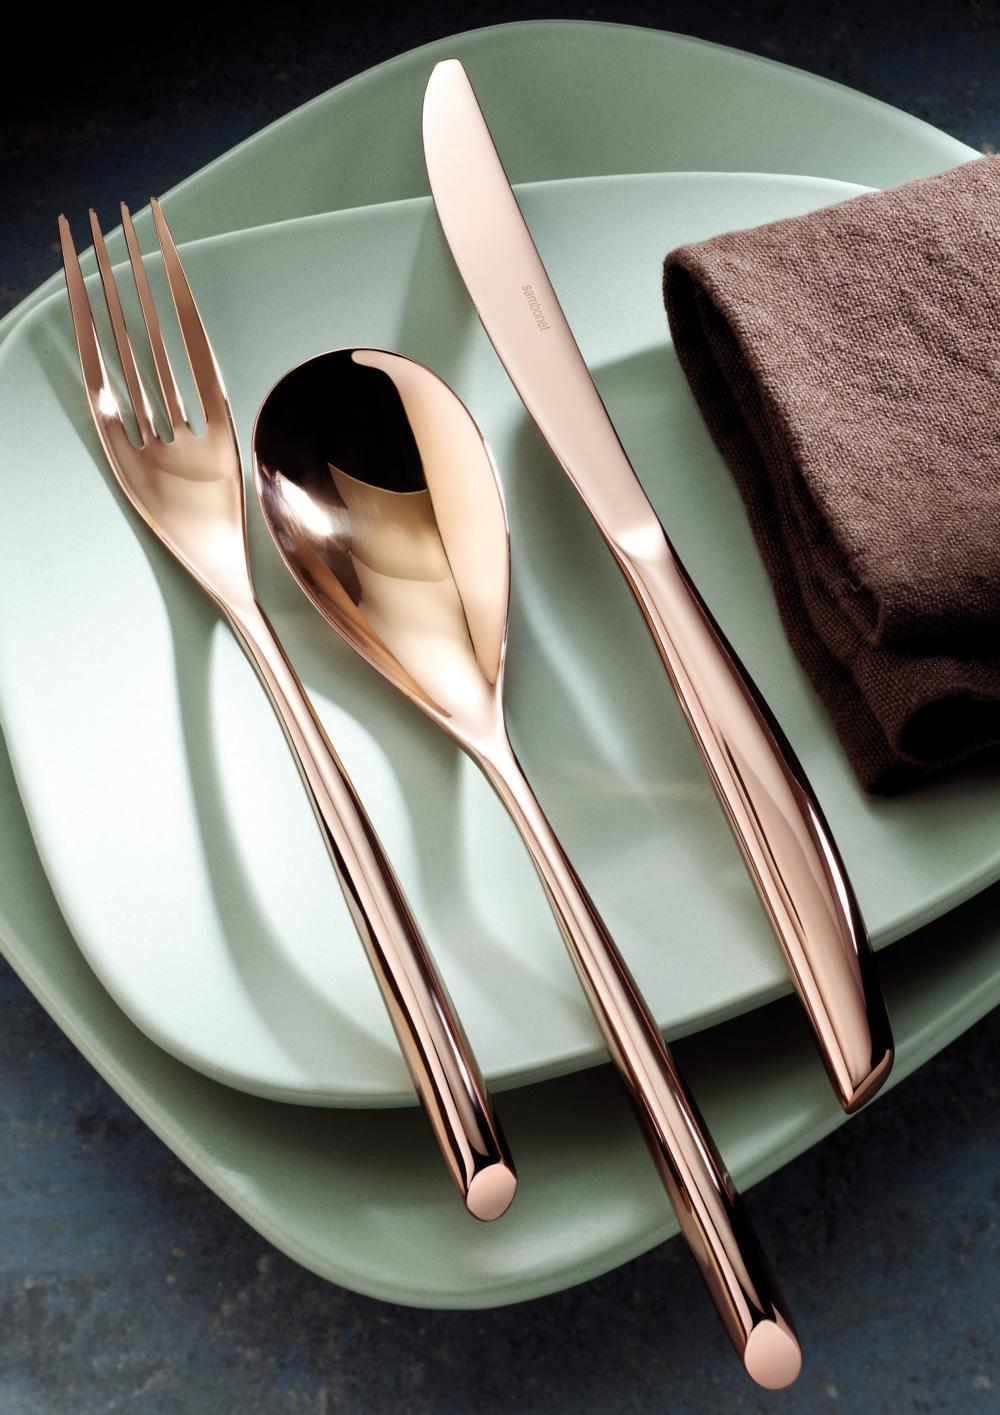 Sambonet Bamboo Copper products